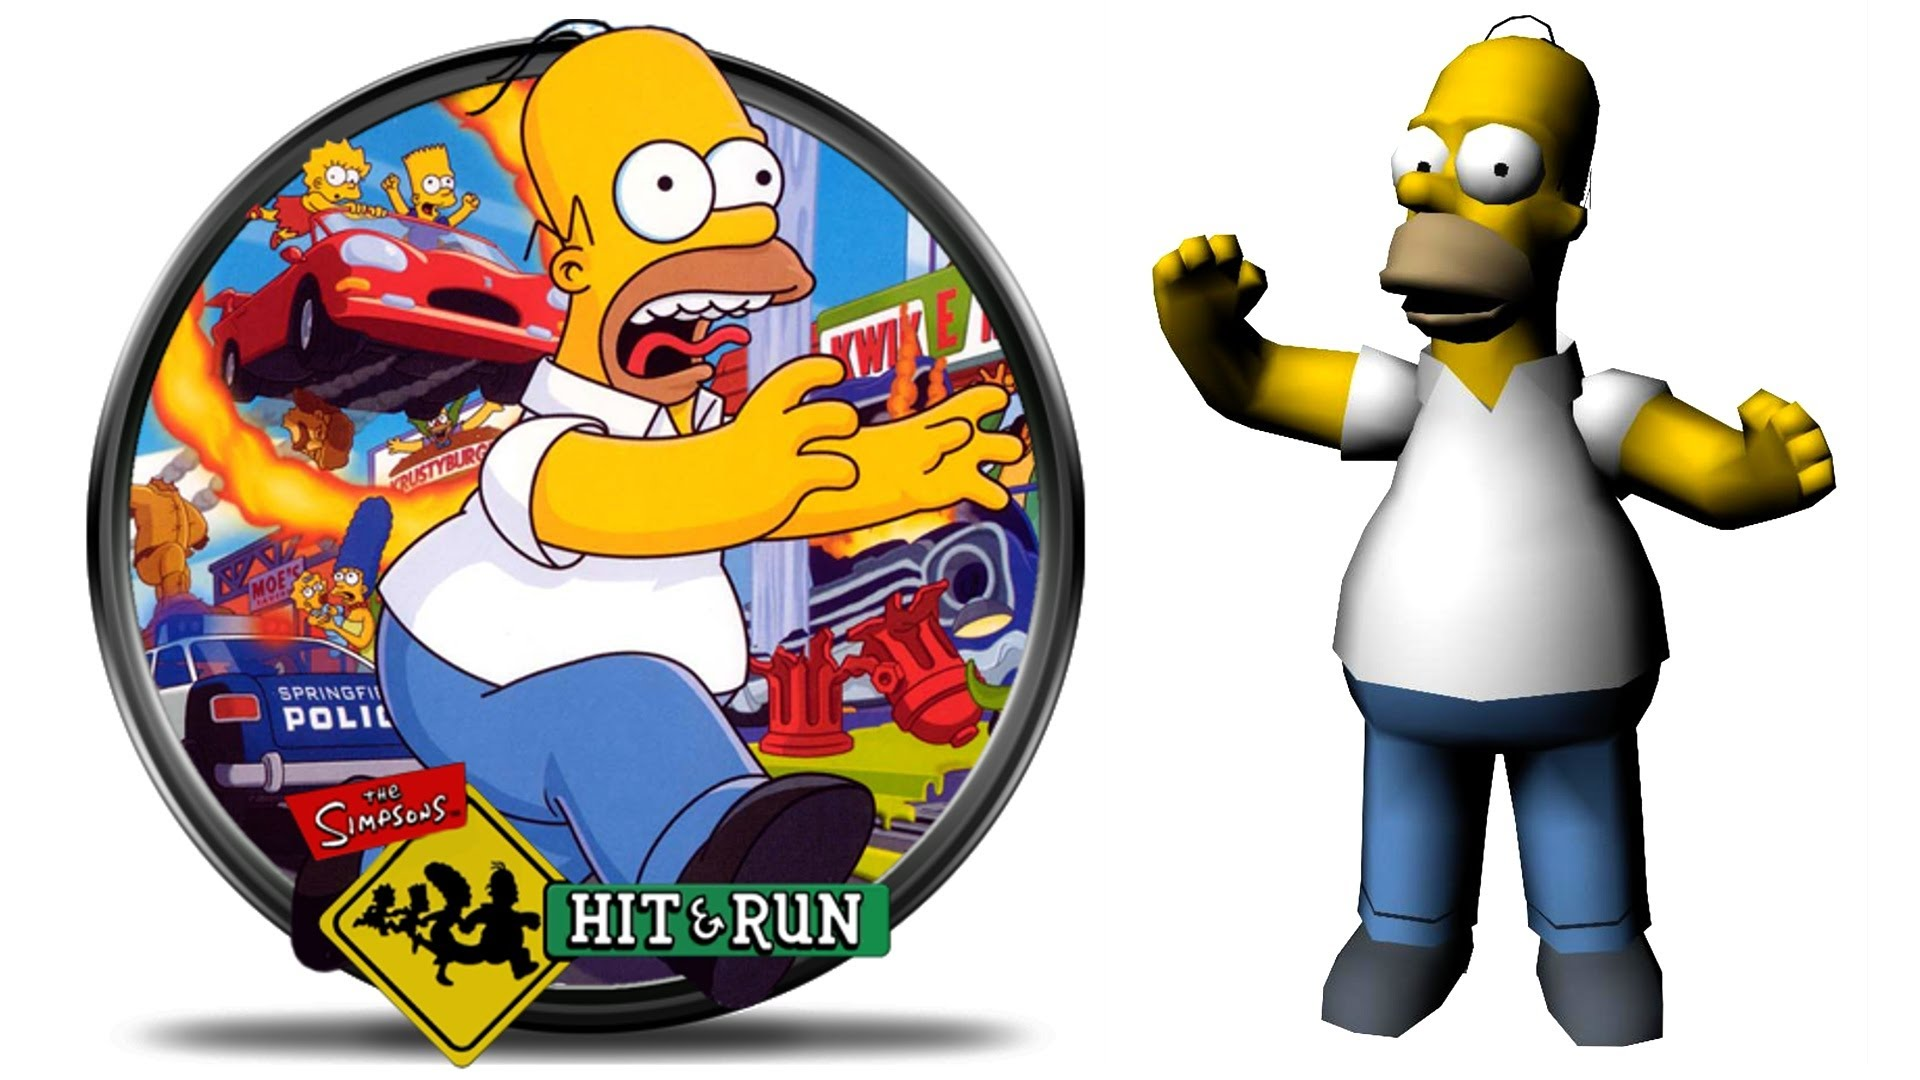 Covered clipart simpsons hit and run #1 Hit Simpsons!!! GTA SIMPSONS: